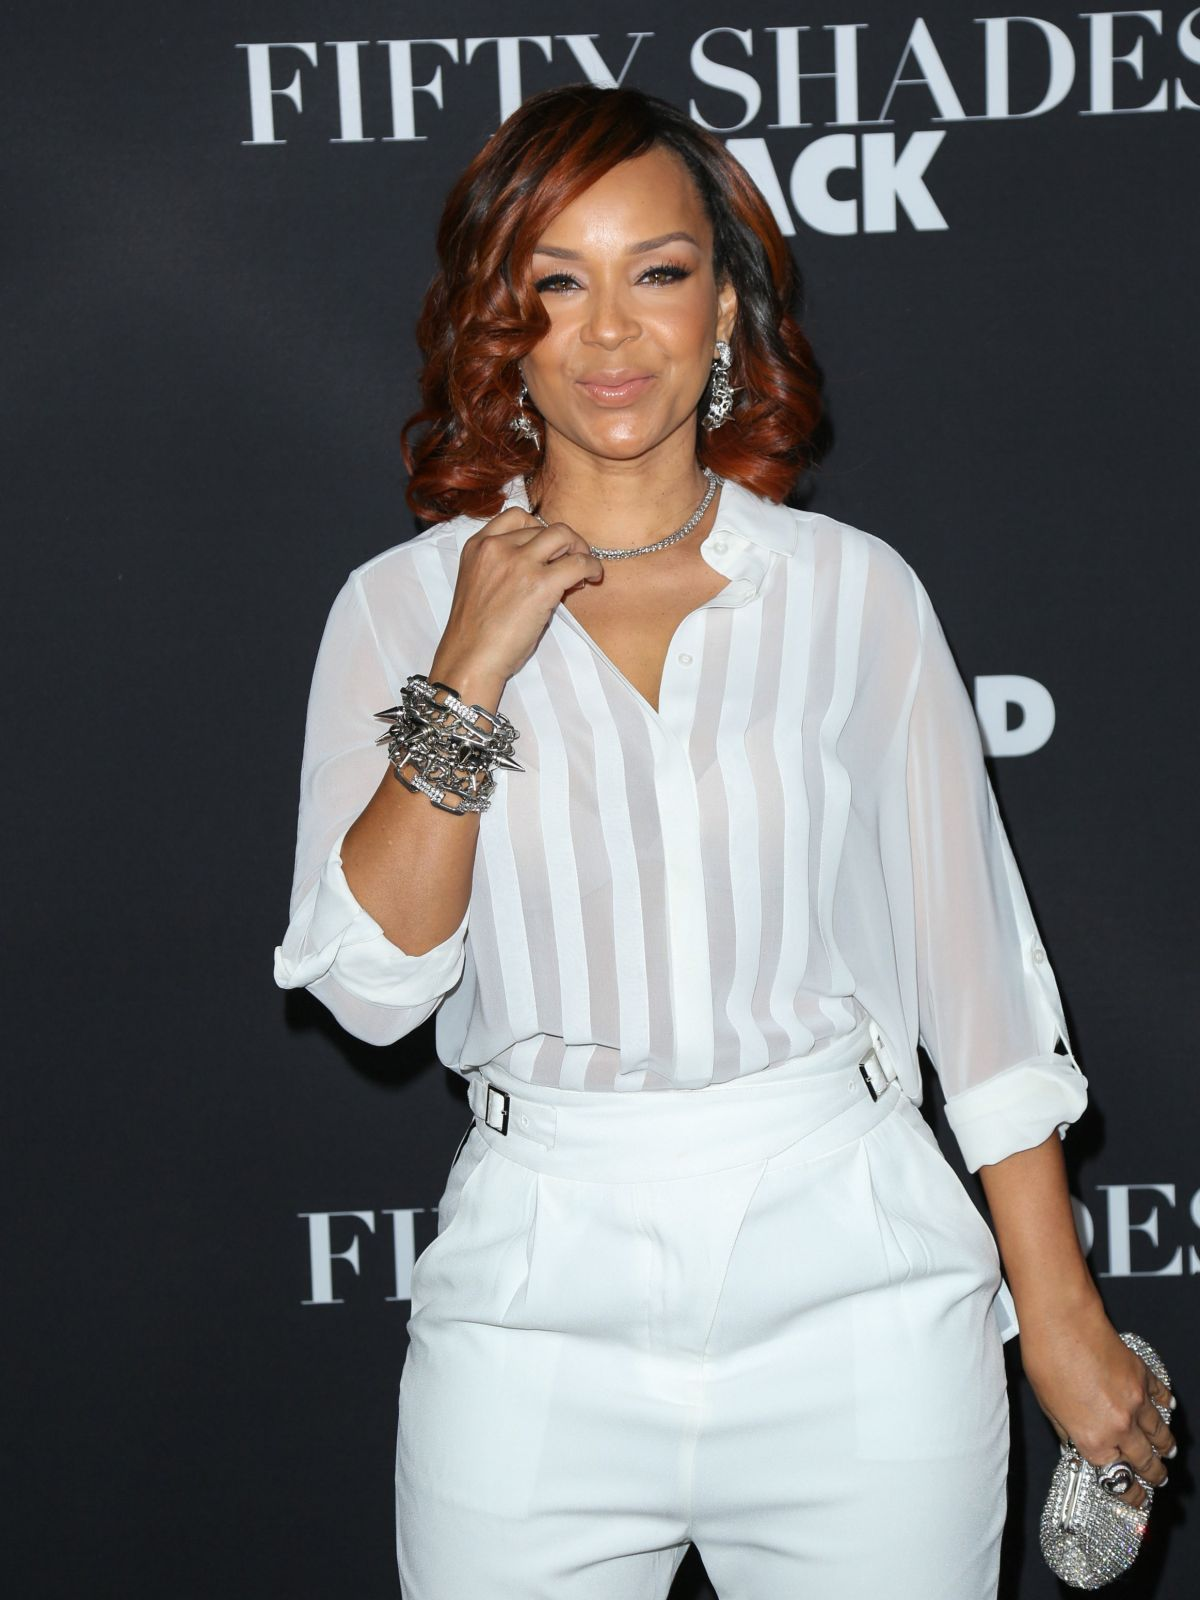 LISARAYE MCCOY at Fifty Shades of Black Premiere in Los Angeles 01/26/2016